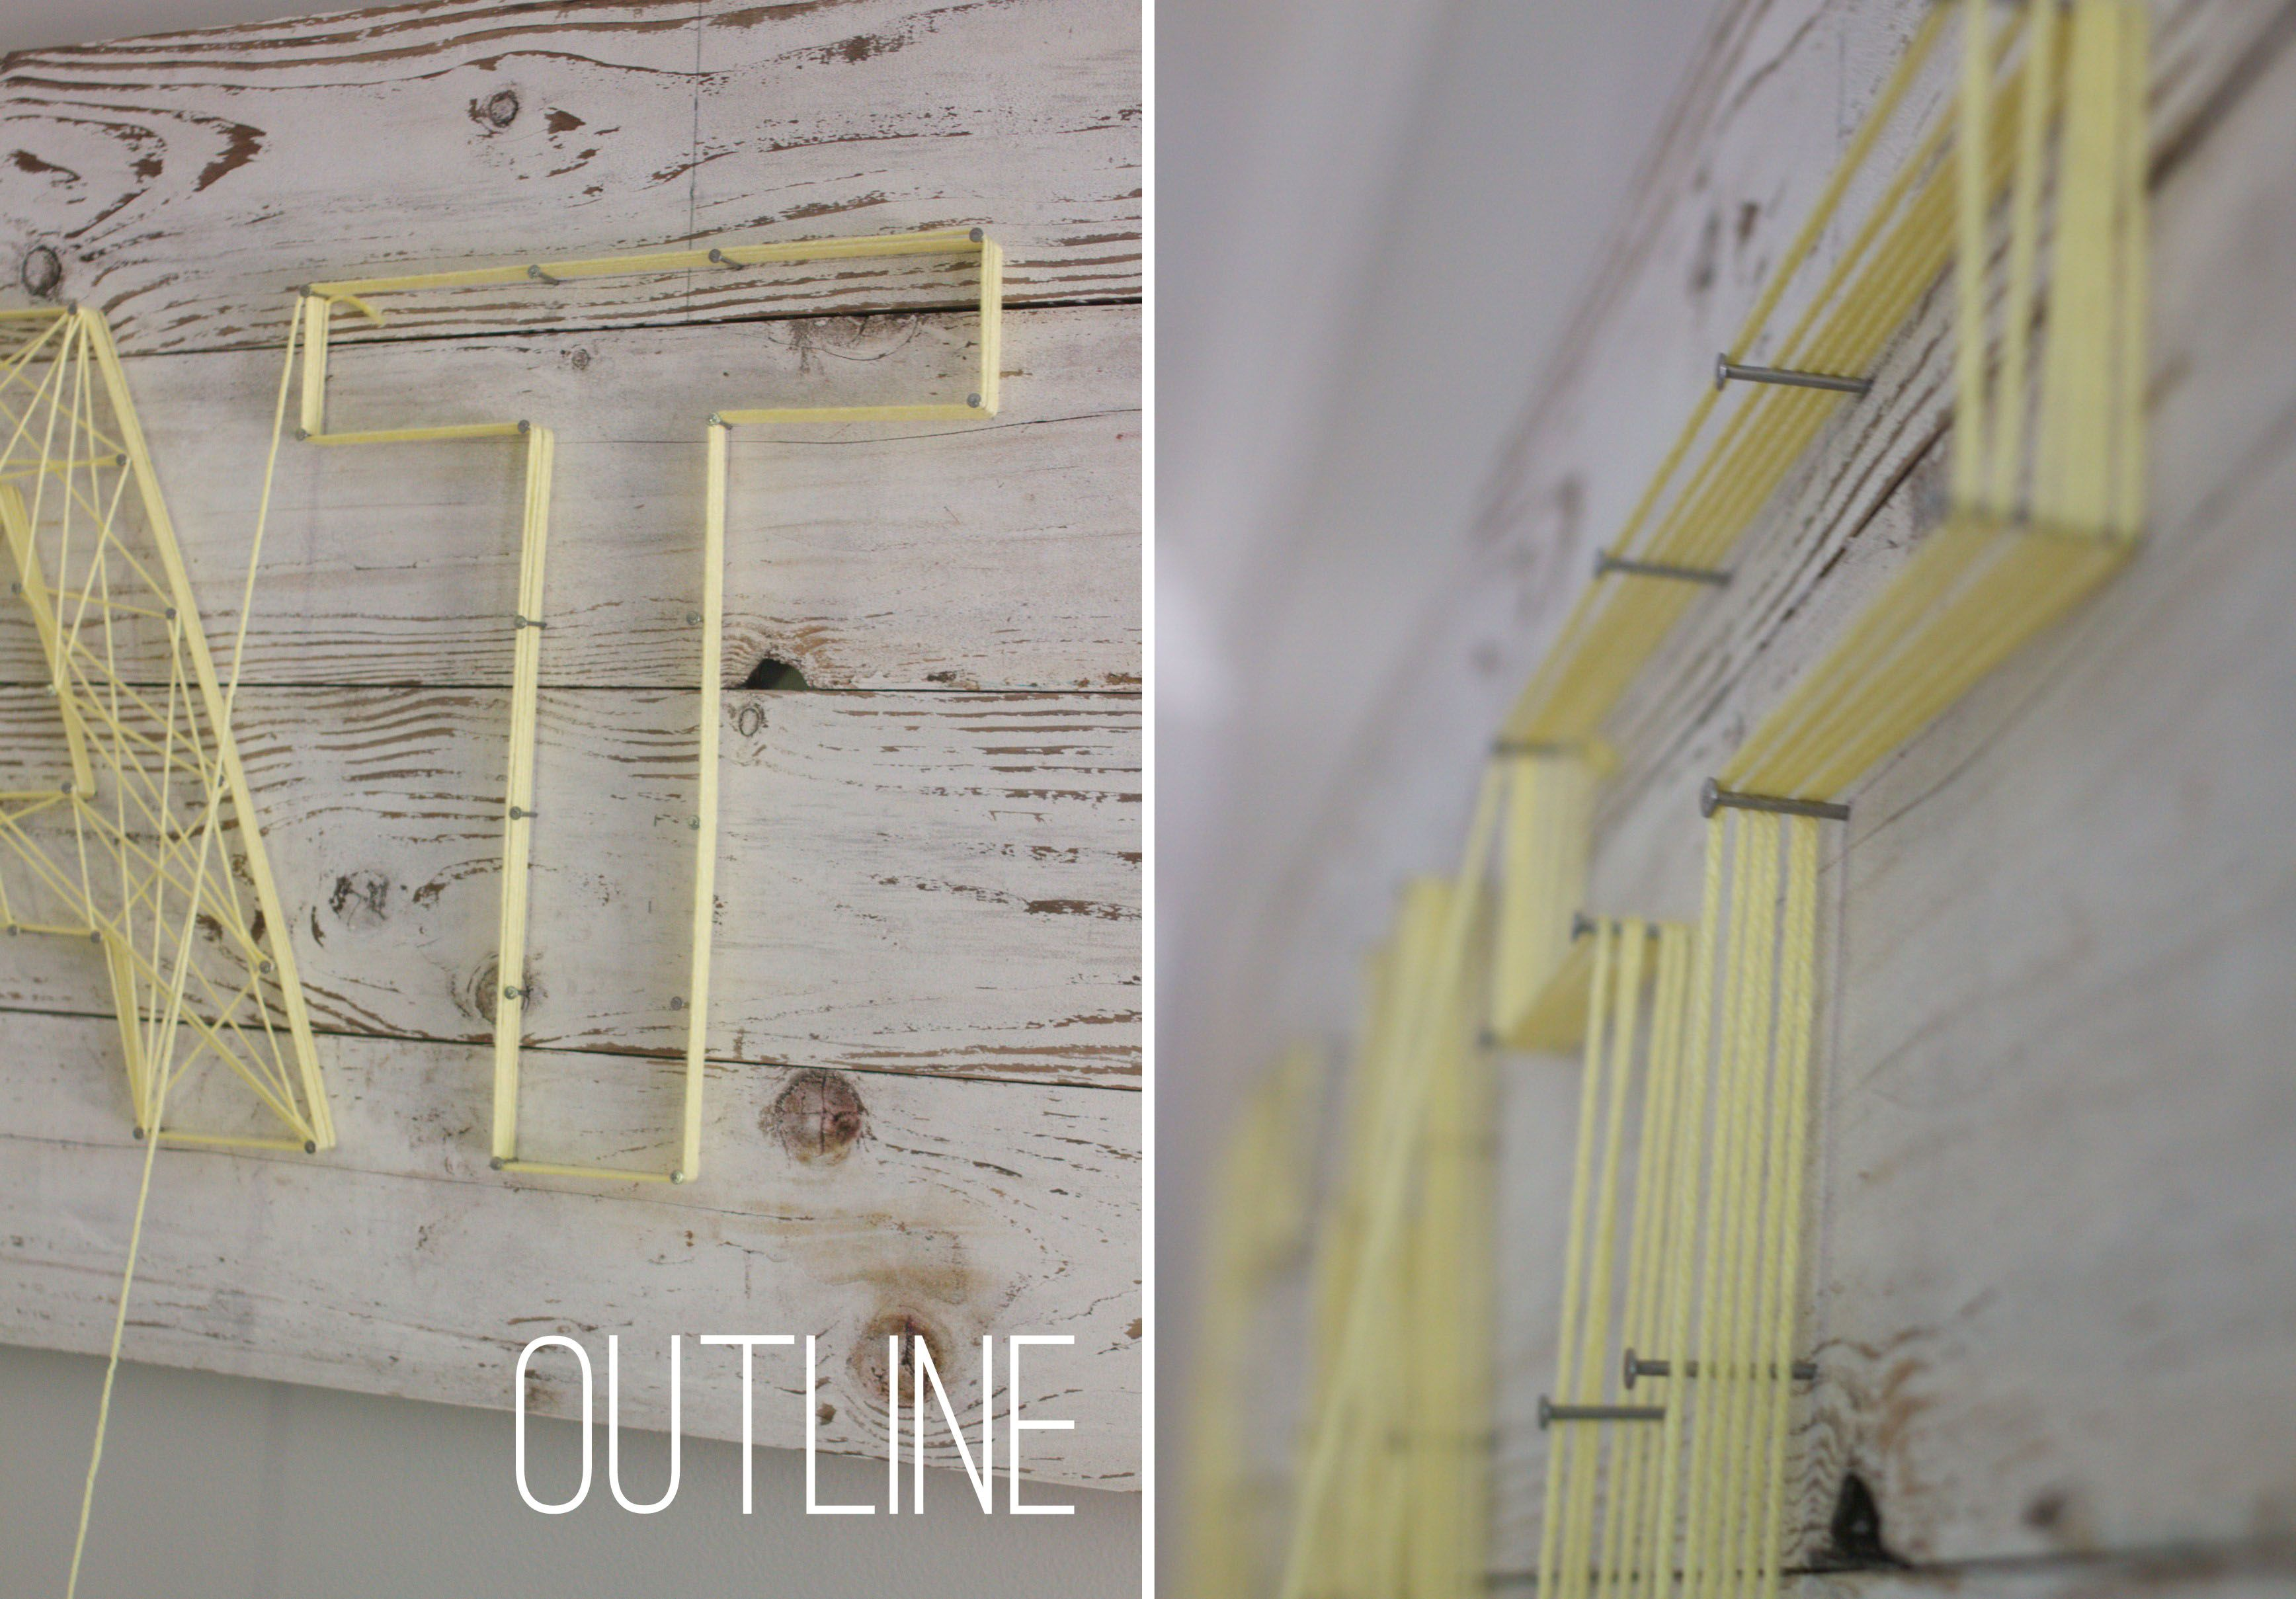 Outline string art diy crafts that i love pinterest string worn white wood boards decoration with popular string art technique became a beautiful dining room accent by yvonne of dress this nest fascinating solutioingenieria Images